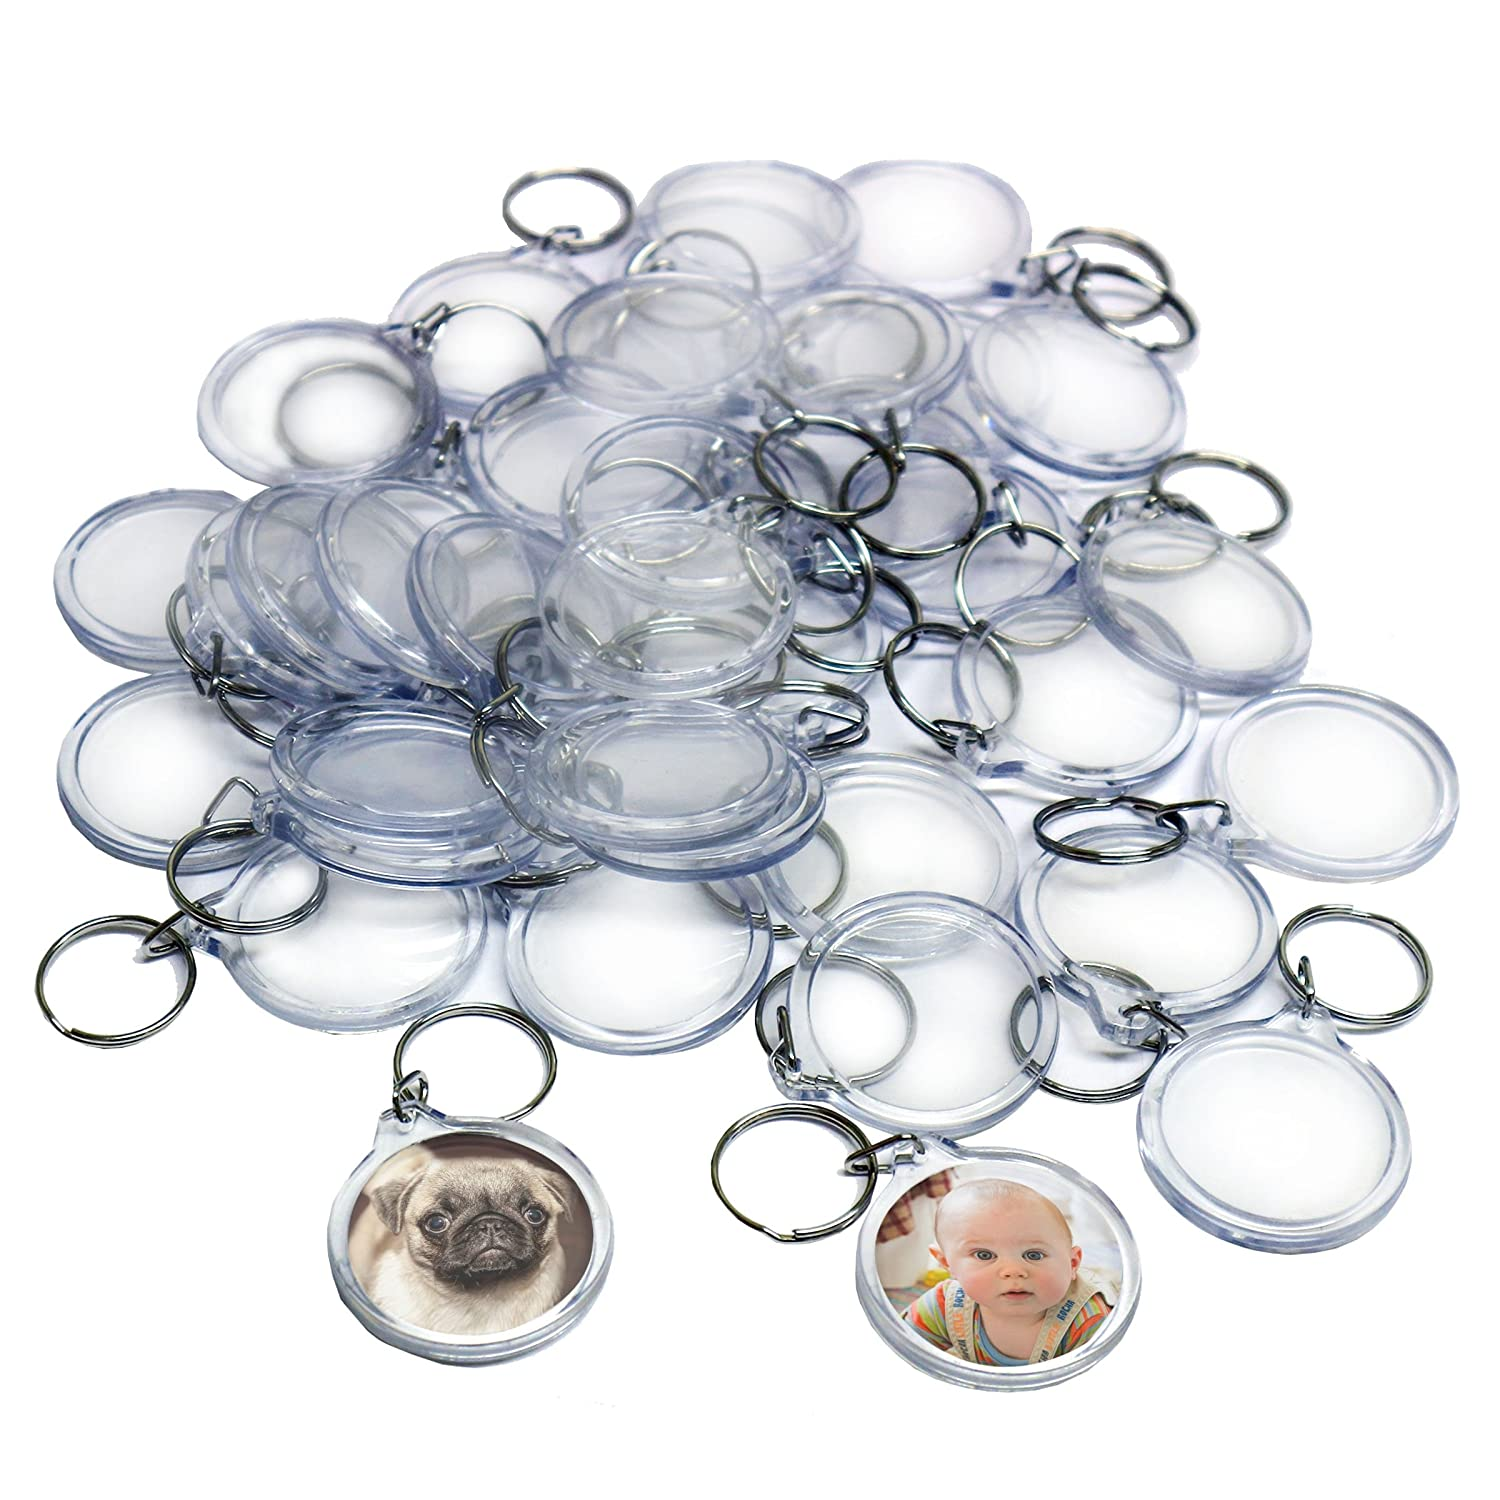 50 Clear Round Acrylic Photo Keychains by Kurtzy - 4 cm Diameter Translucent Keyring - Wallet Friendly Key Ring for Custom Personalised Insert Pictures - Plastic Keychain Suitable for Women and Men MA-6042